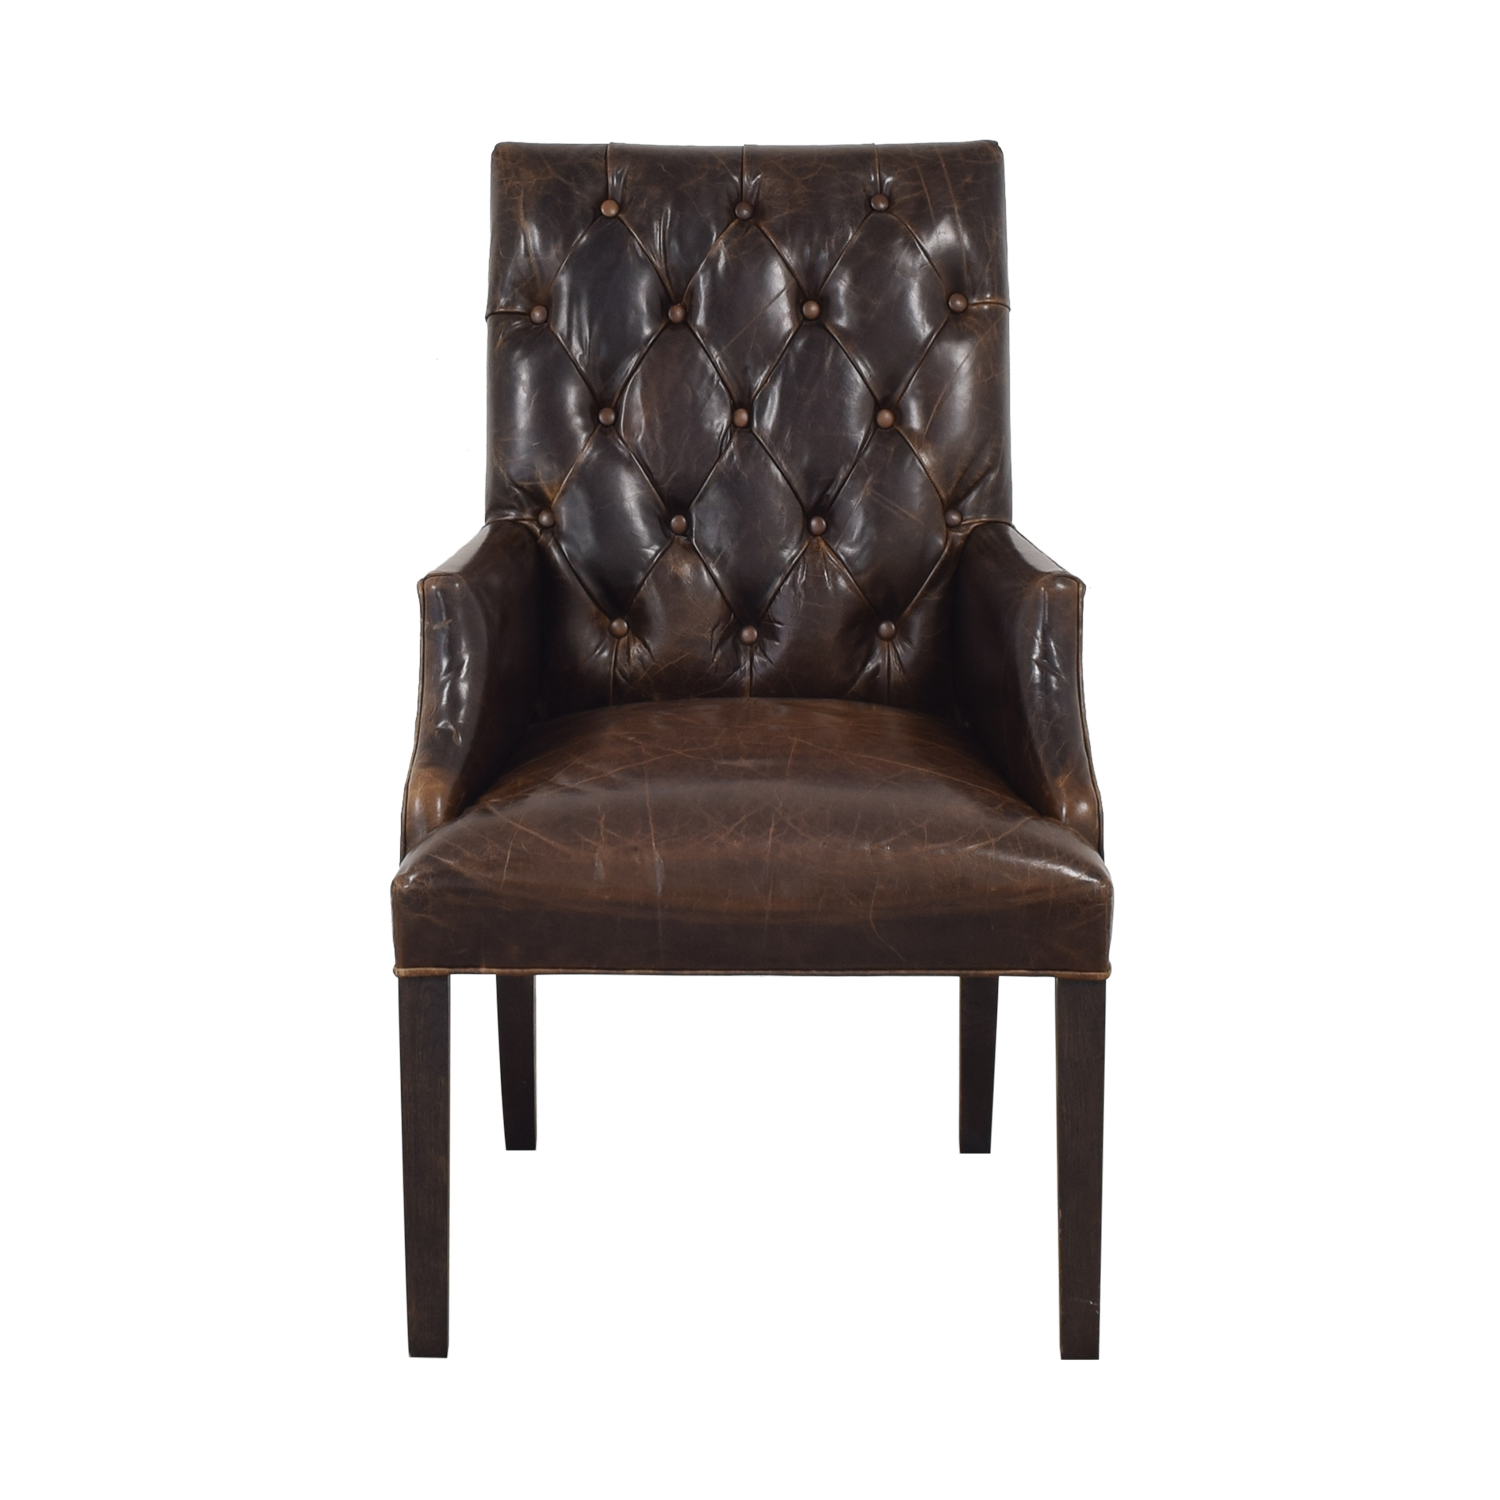 Restoration Hardware Restoration Hardware Bennett Parsons Armchair second hand